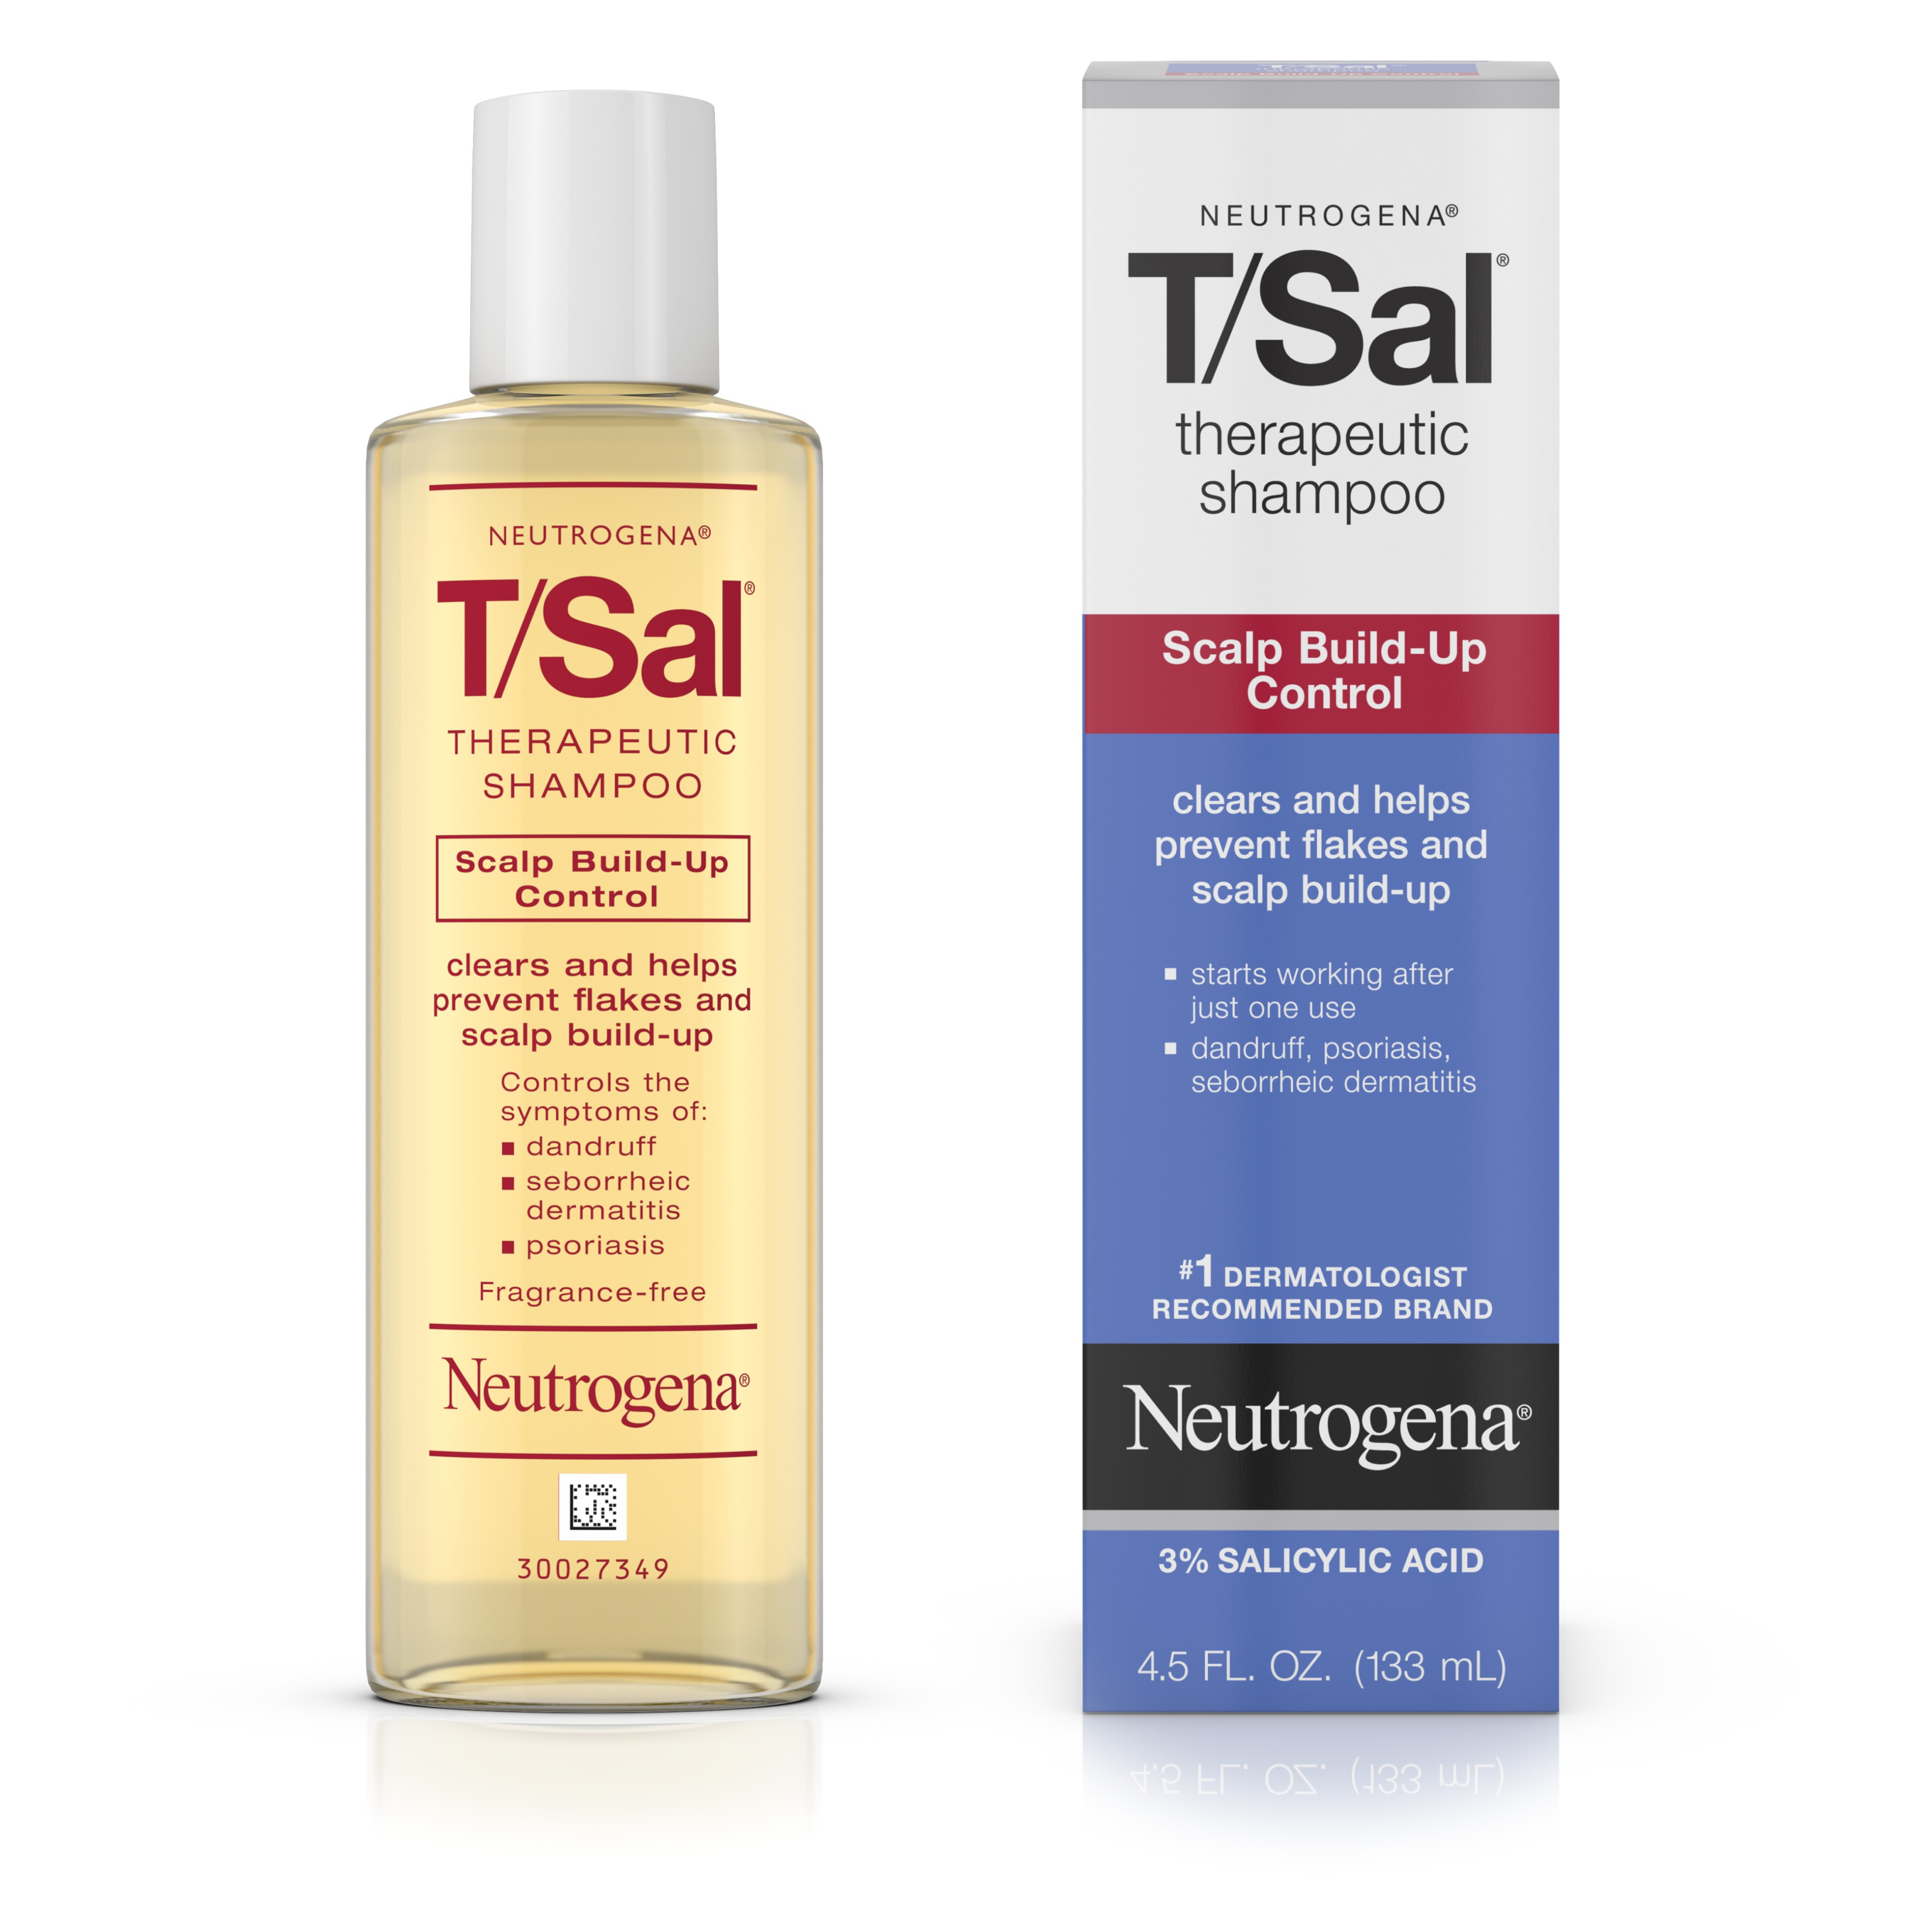 Neutrogena T/Sal Shampoo Scalp Build-Up Control, 4.5 Fl Oz